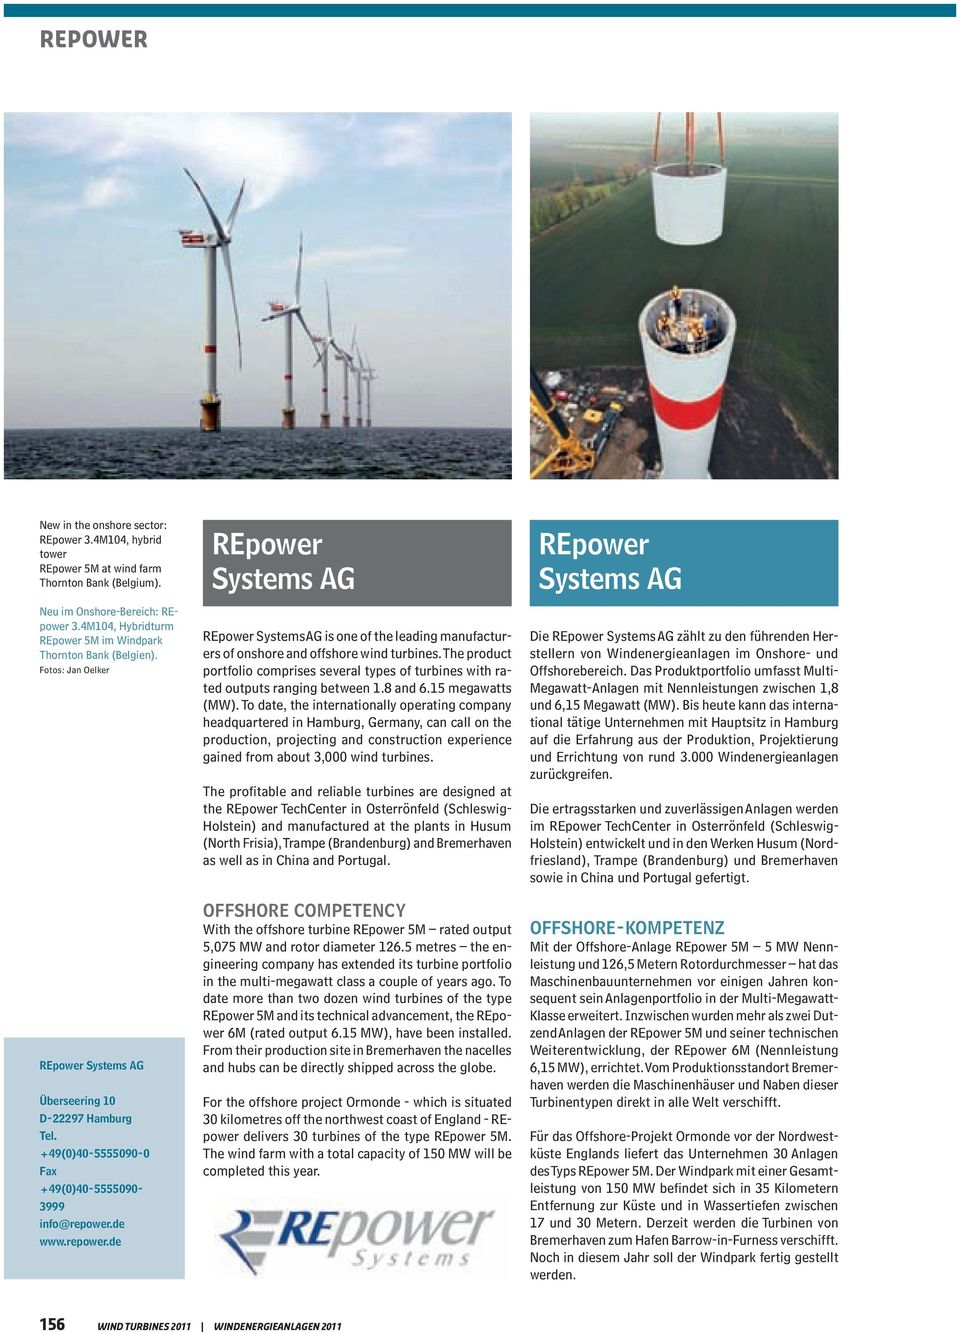 de www.repower.de REpower Systems AG REpower Systems AG is one of the leading manufacturers of onshore and offshore wind turbines.